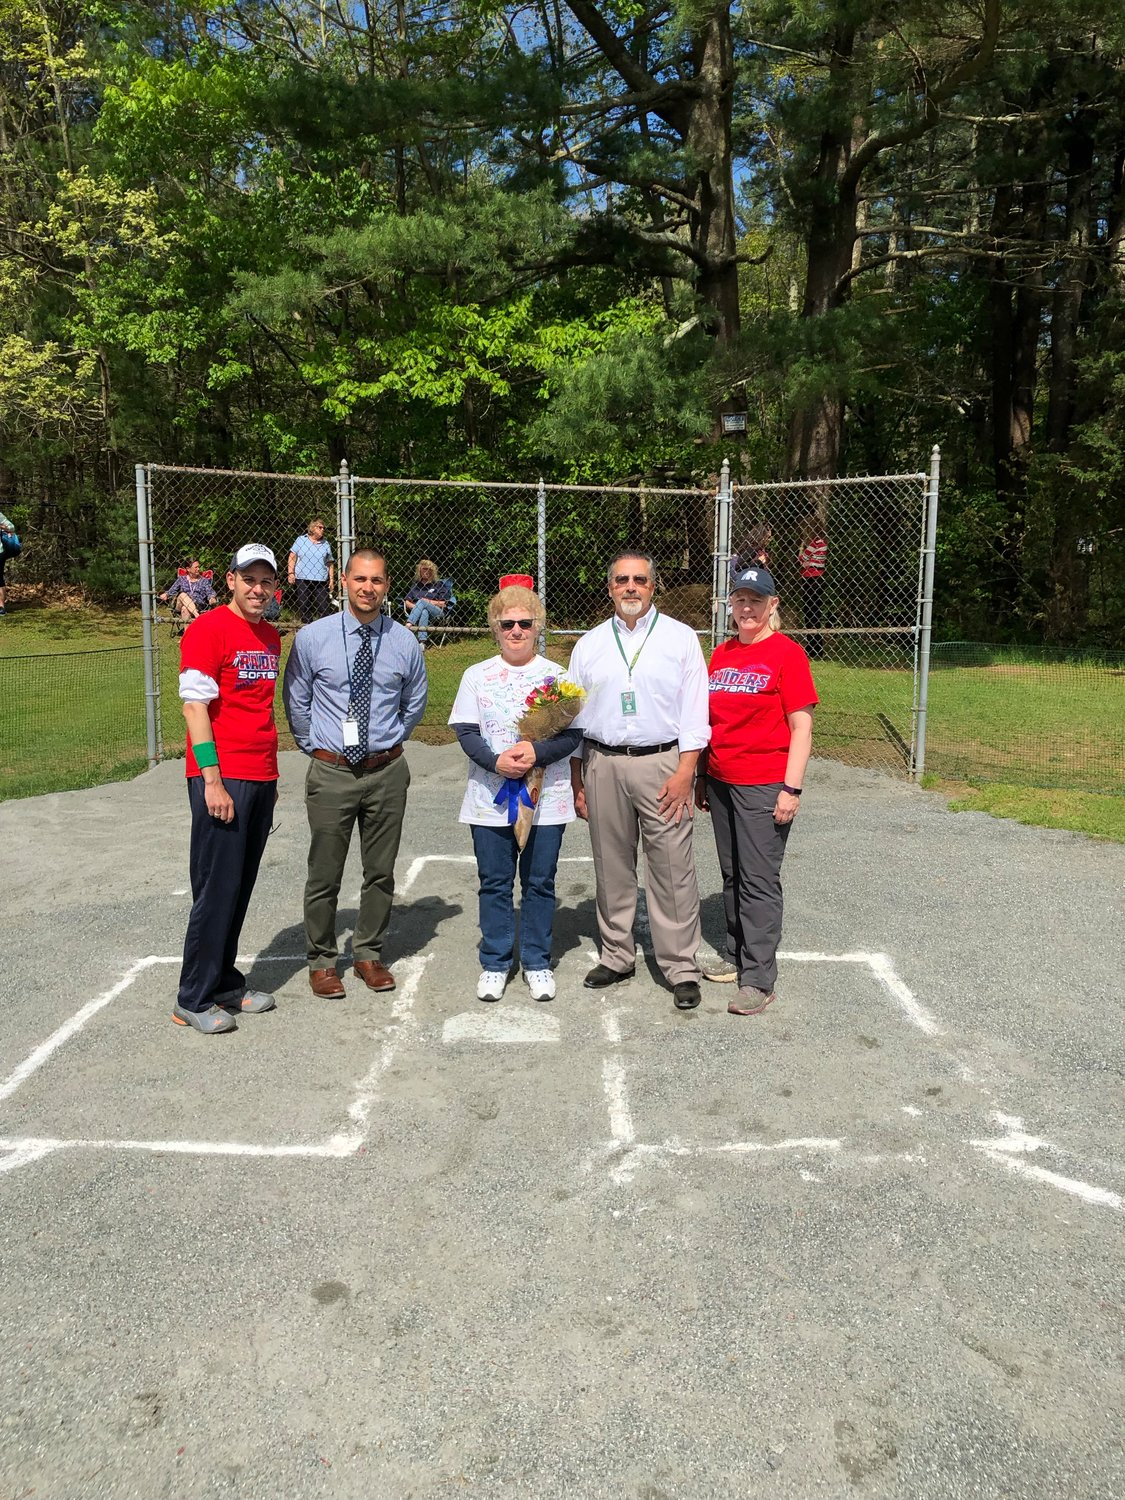 Lady Raiders Coaches, Superintendent Dr. Azar, and Principal Pirraglia at home plate.